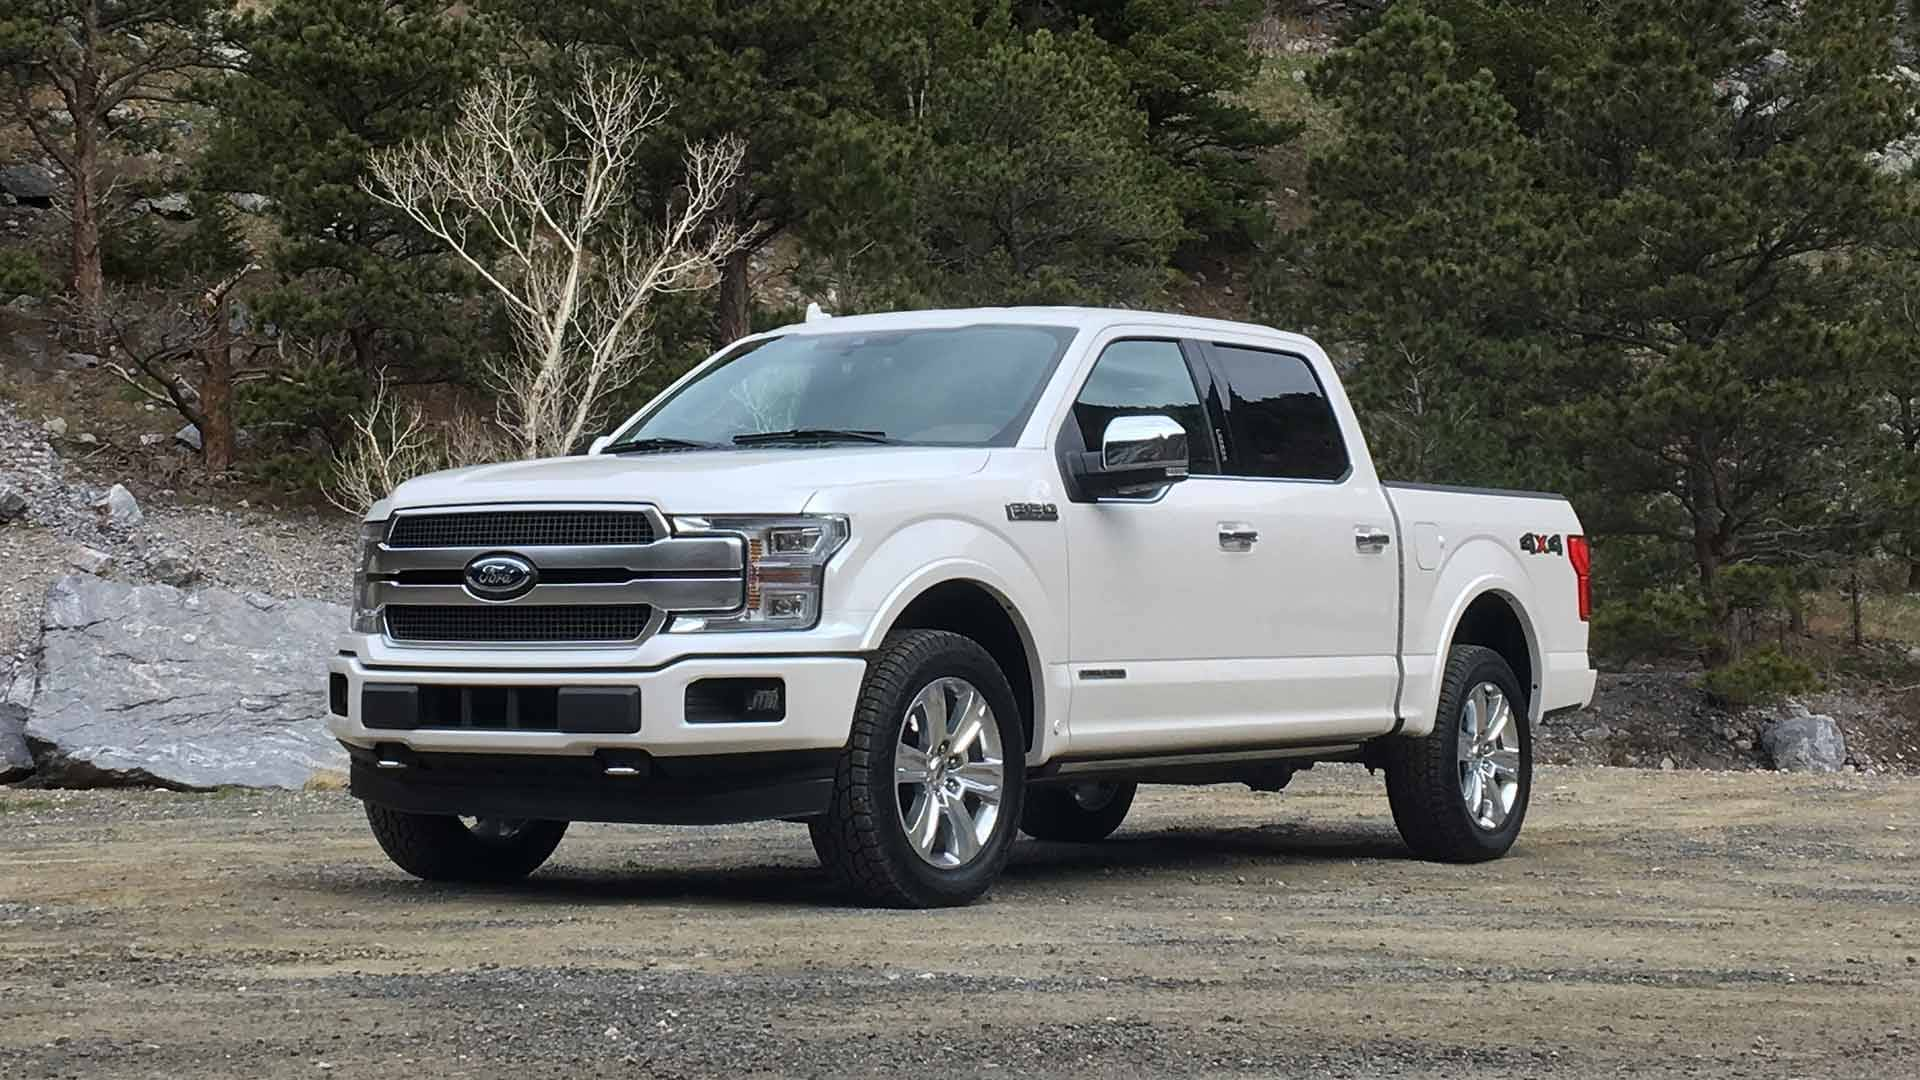 2018 ford f 150 power stroke diesel first drive motor1 com photos